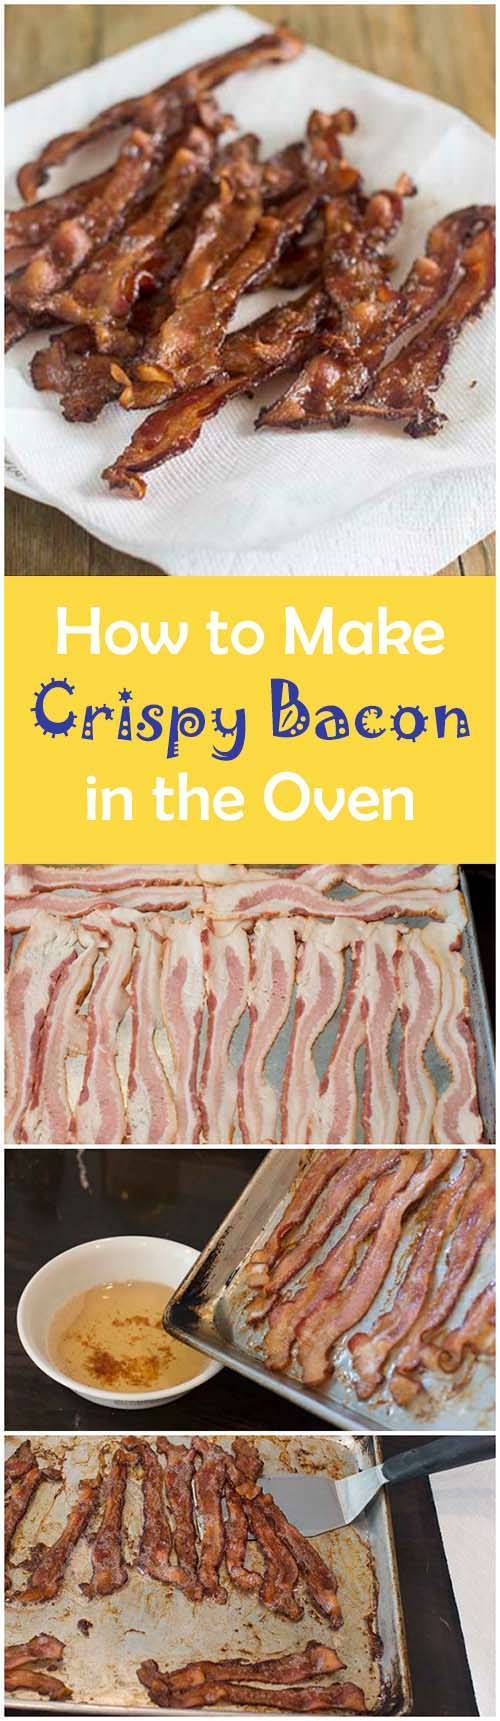 Crispy Bacon in the Oven